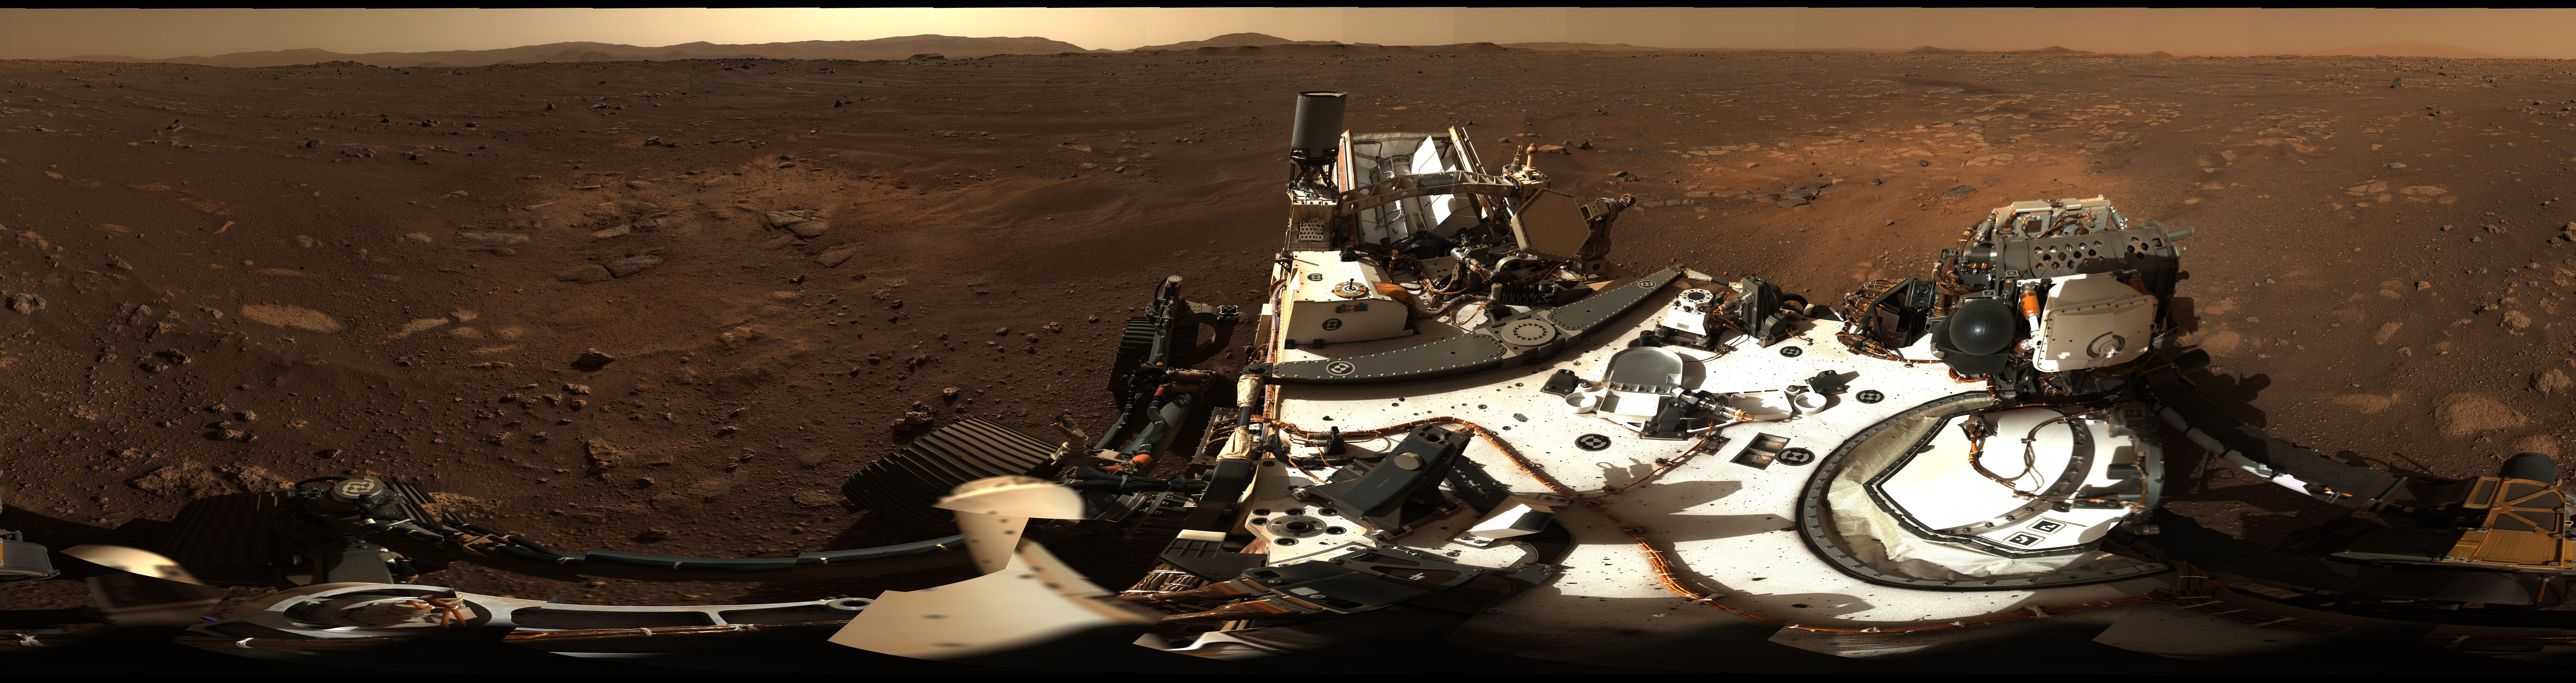 Panorama of the Perseverance rover landing site